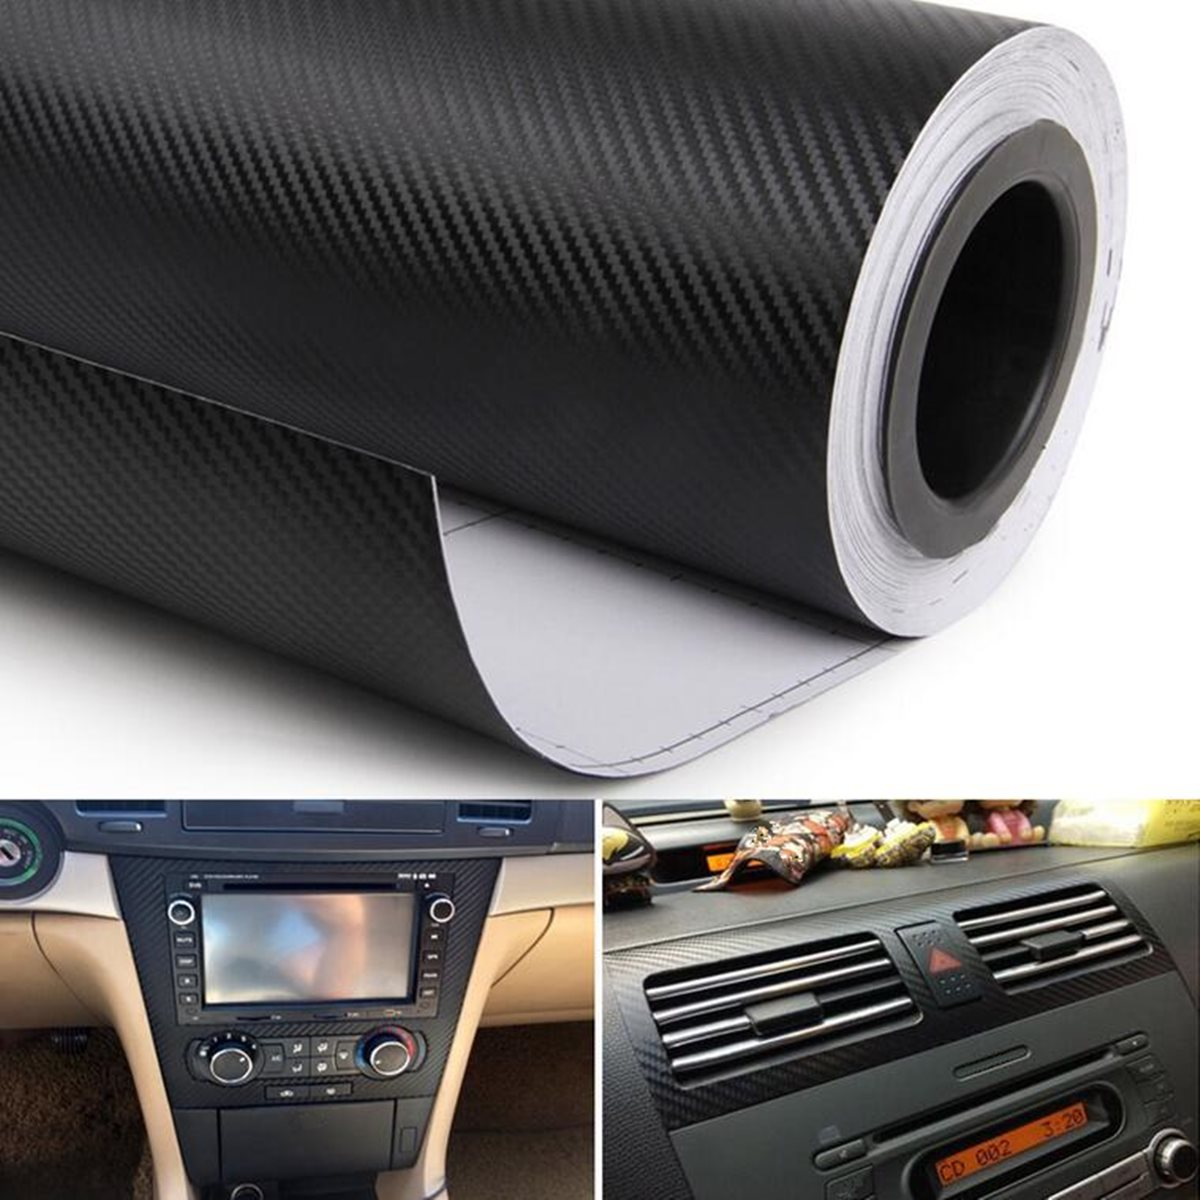 цена на 38cm x 100cm Car Styling Sticker Glossy Black Carbon Fiber Vinyl Wrap Film DIY Car Decorative For Motorcycle Motor Car Truck